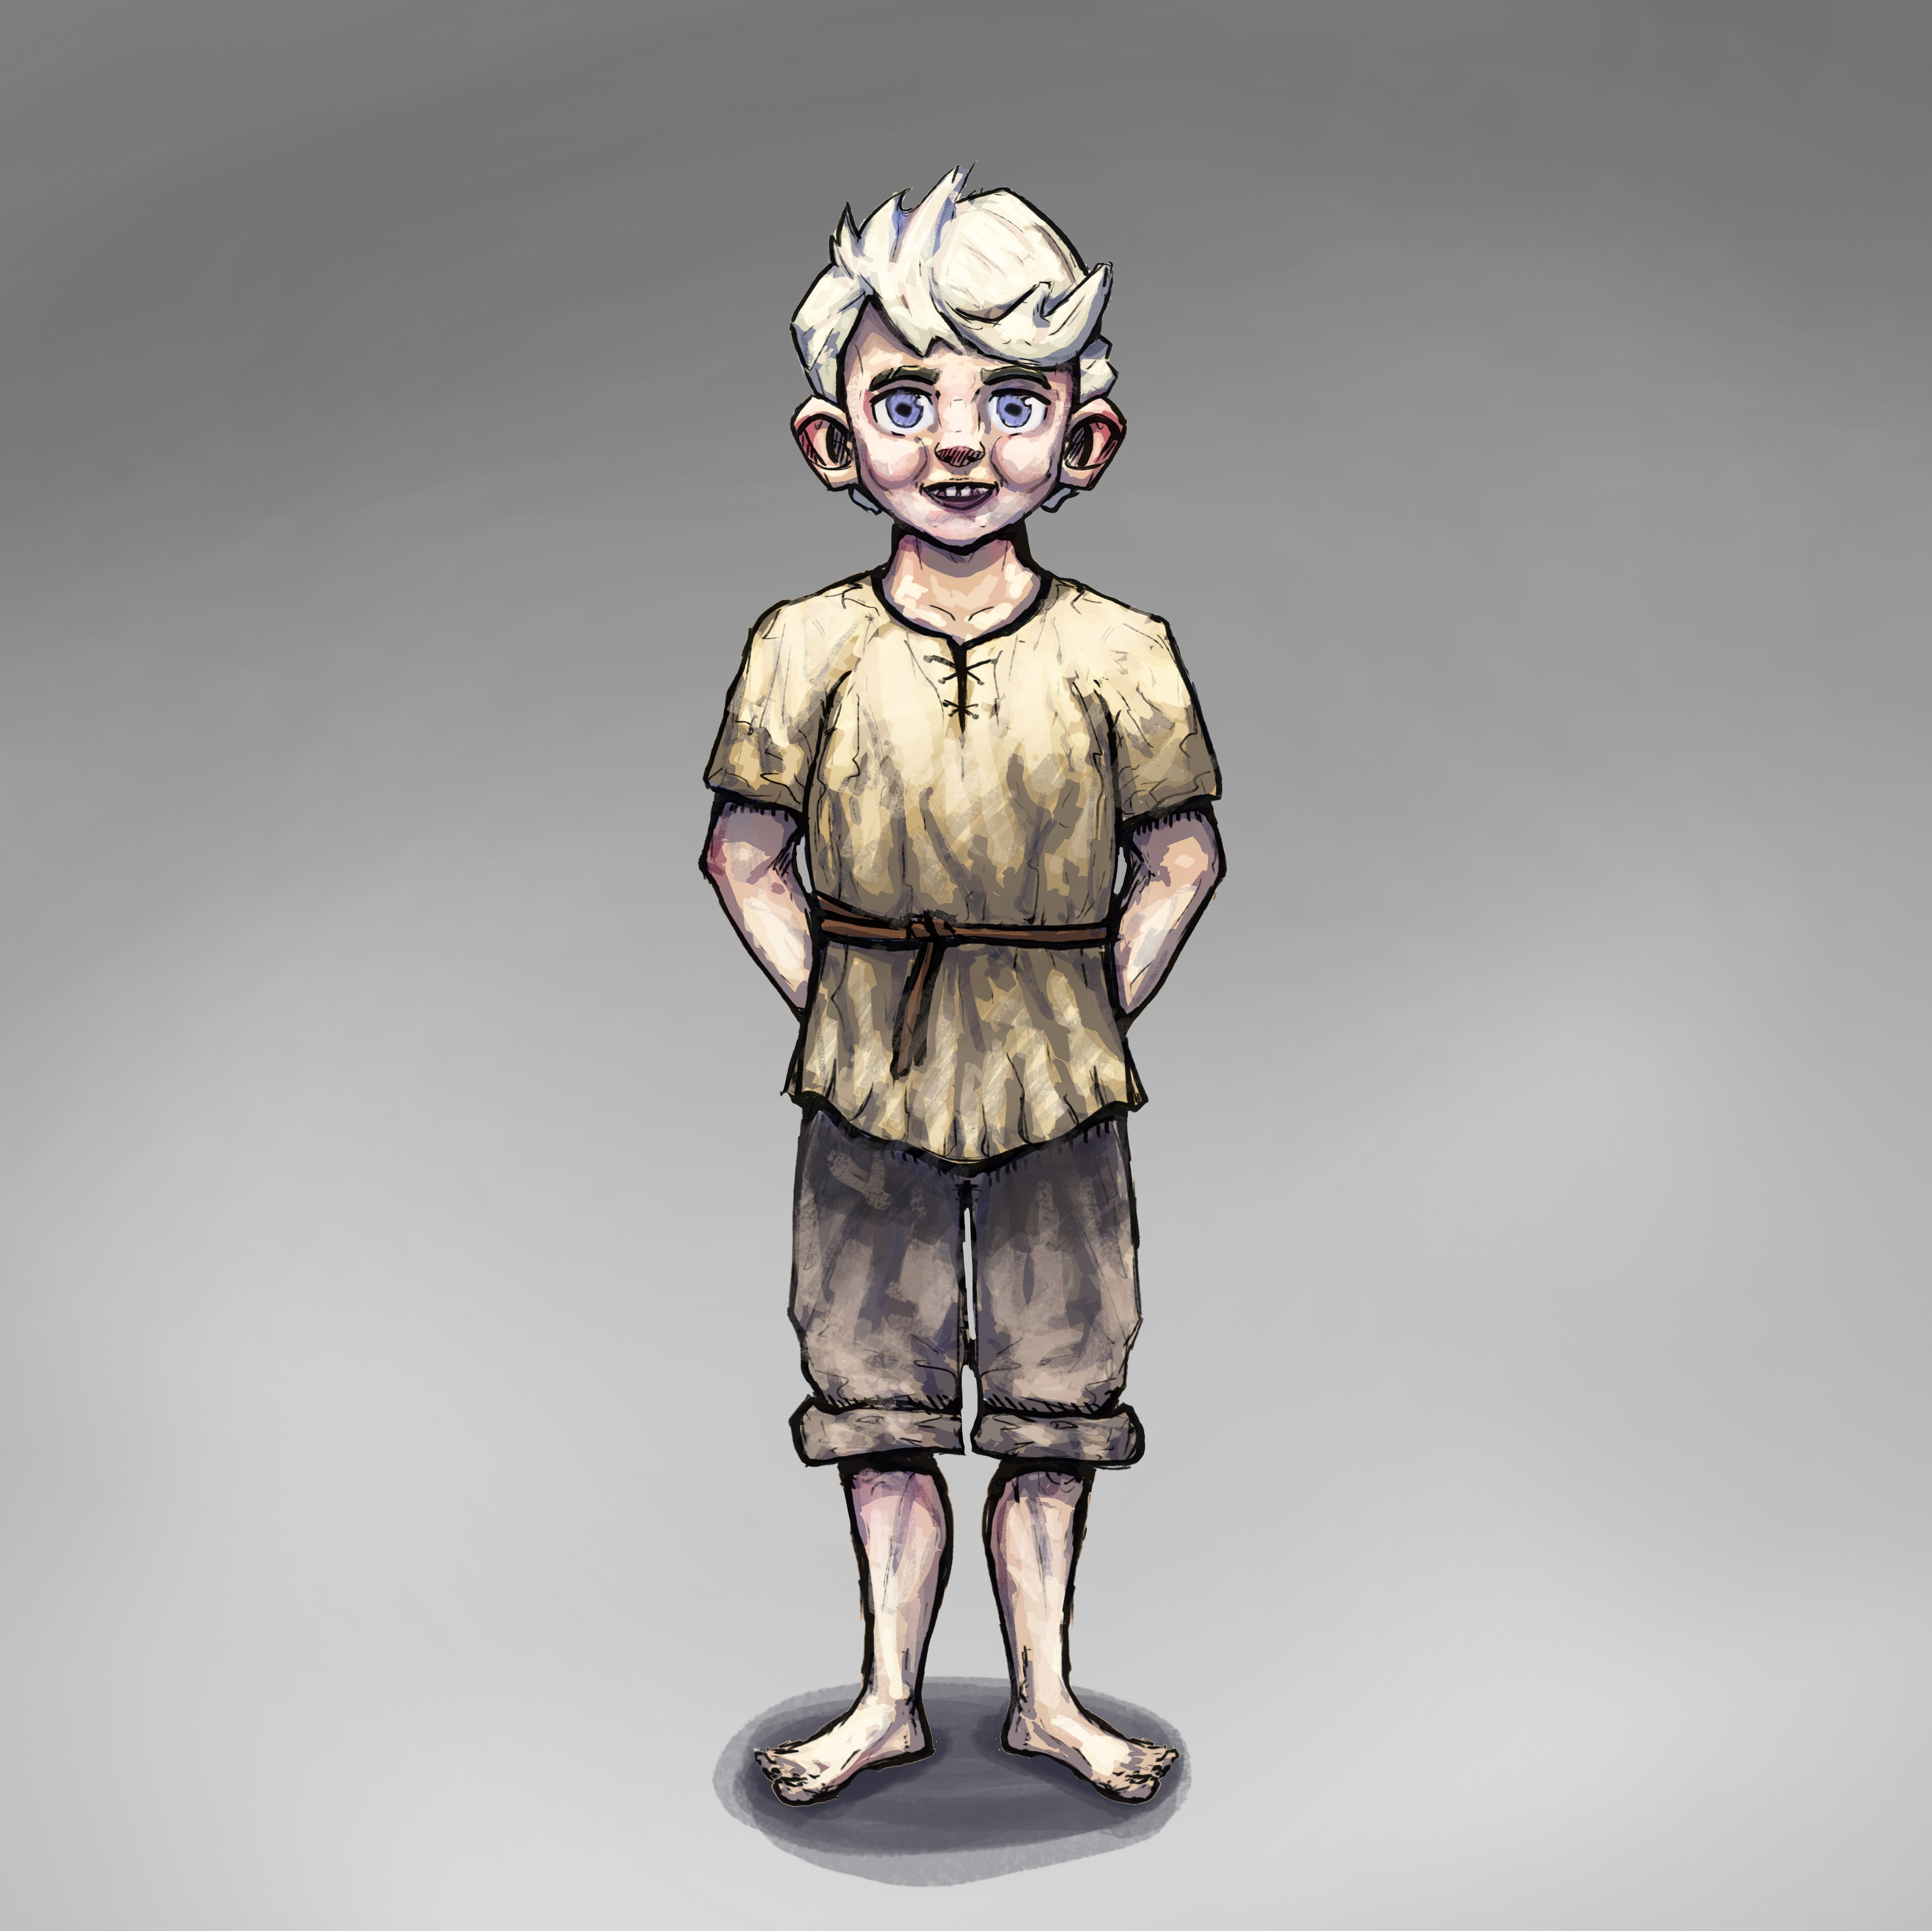 Character design for Lukas (Player Character).